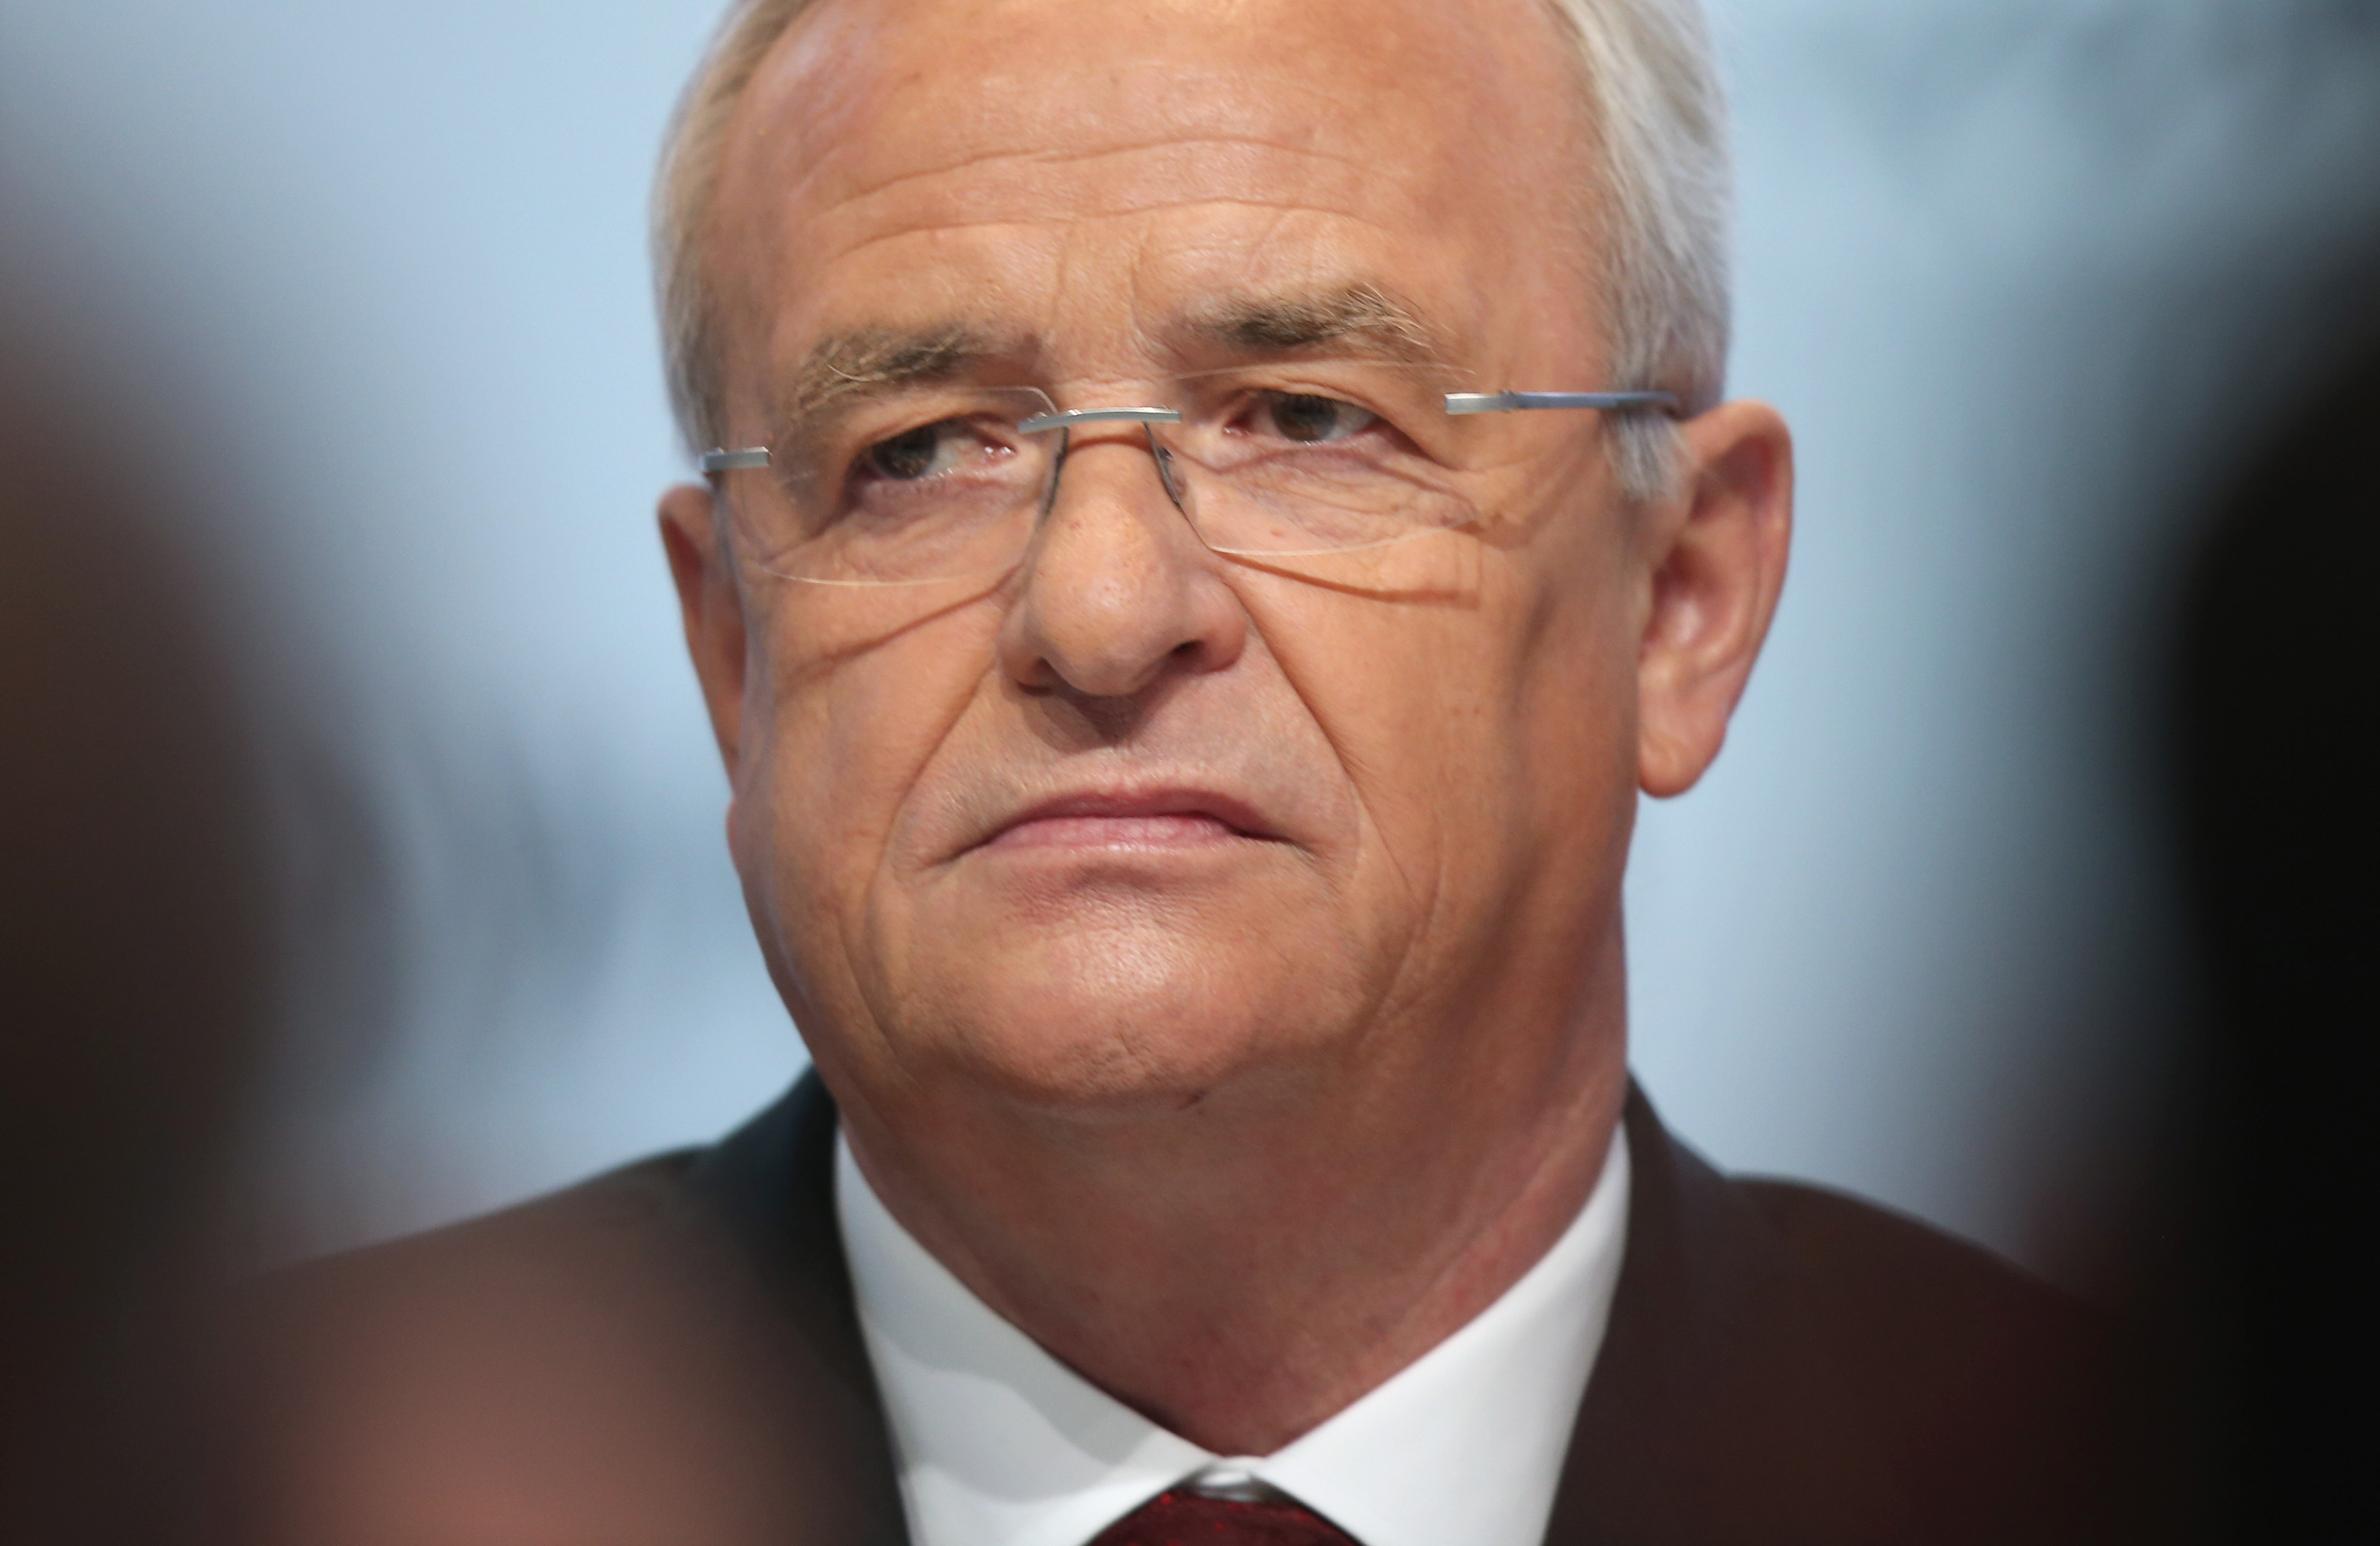 In this file photo Volkswagen CEO Martin Winterkorn attends the company's annual press conference on March 13, 2014 in Wolfsburg, Germany.